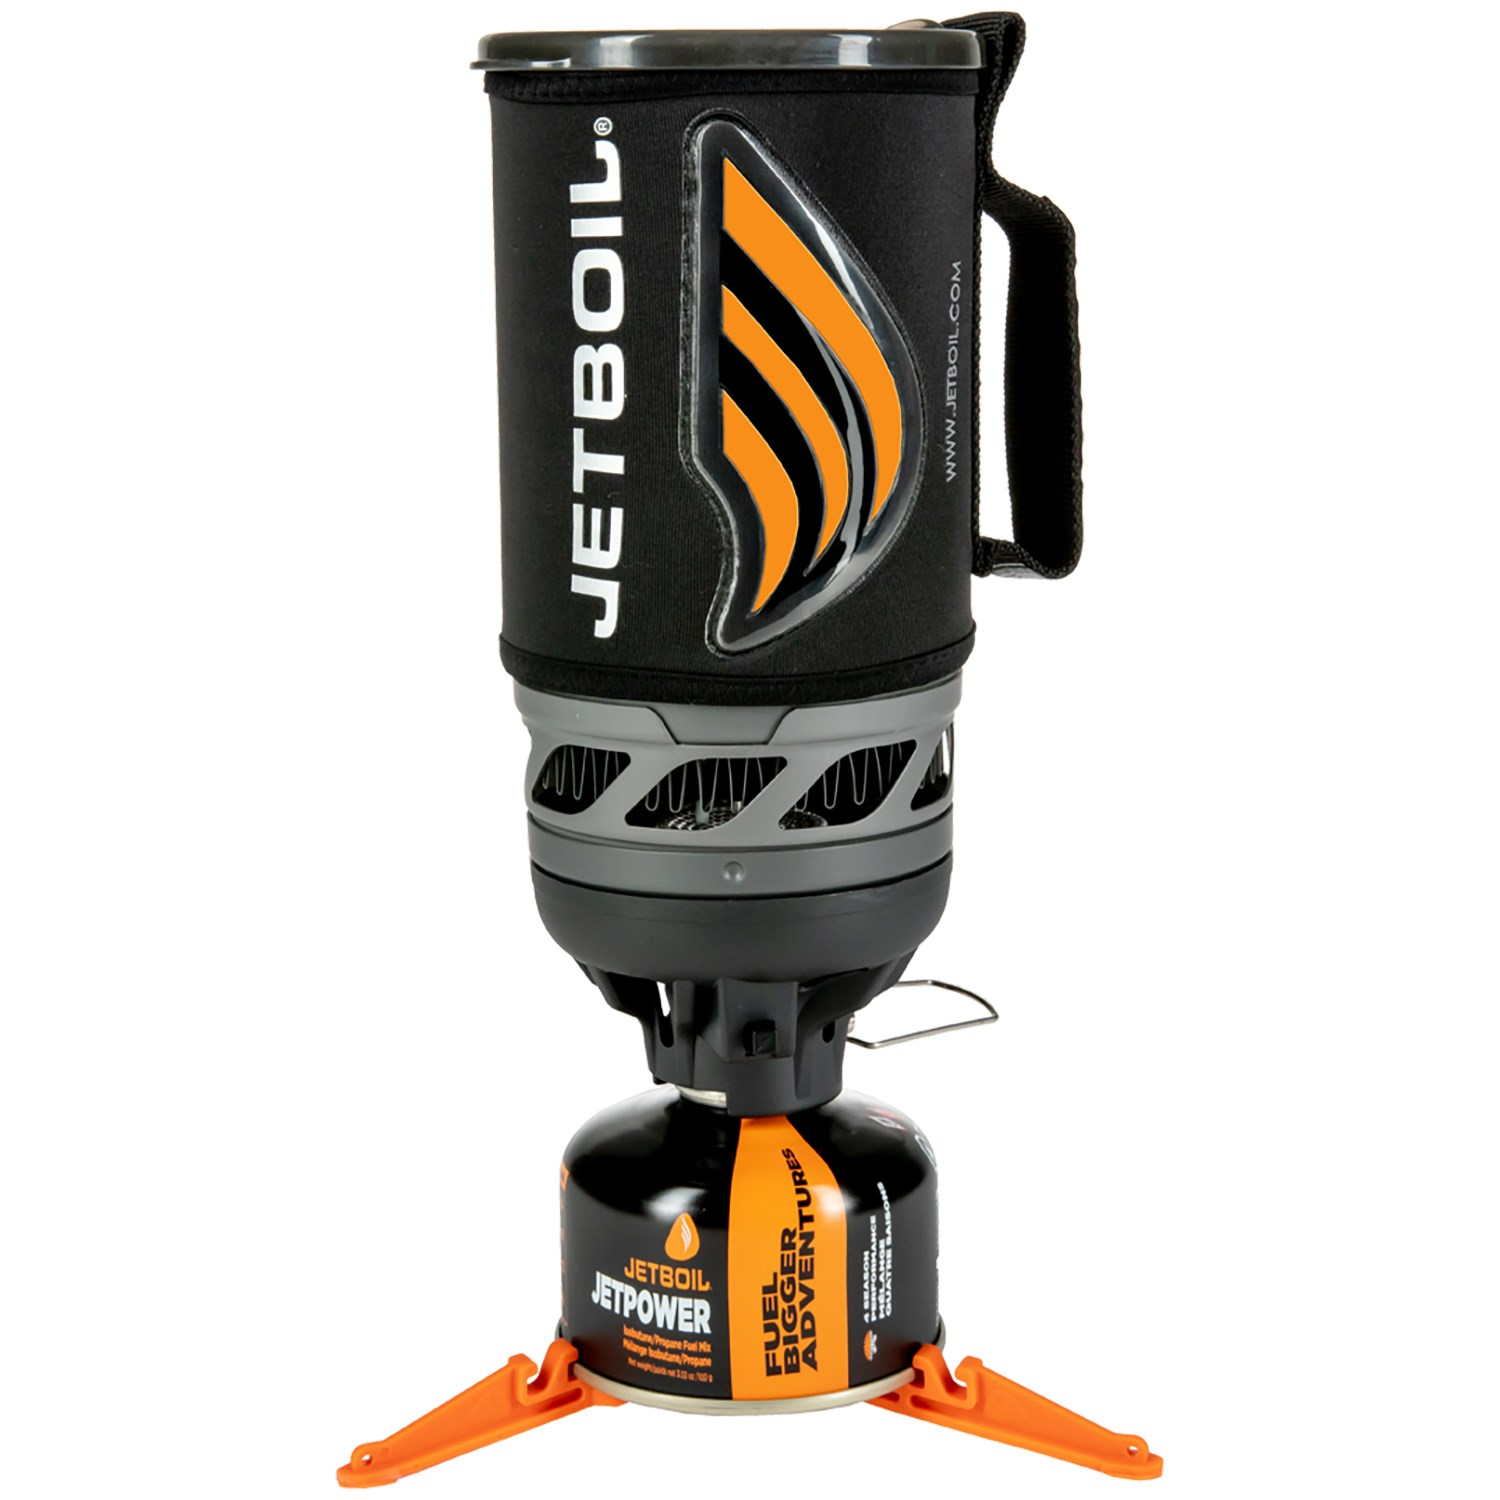 New Camo Jetboil Flash Personal Cooking System//Stove with Free 100g Gas